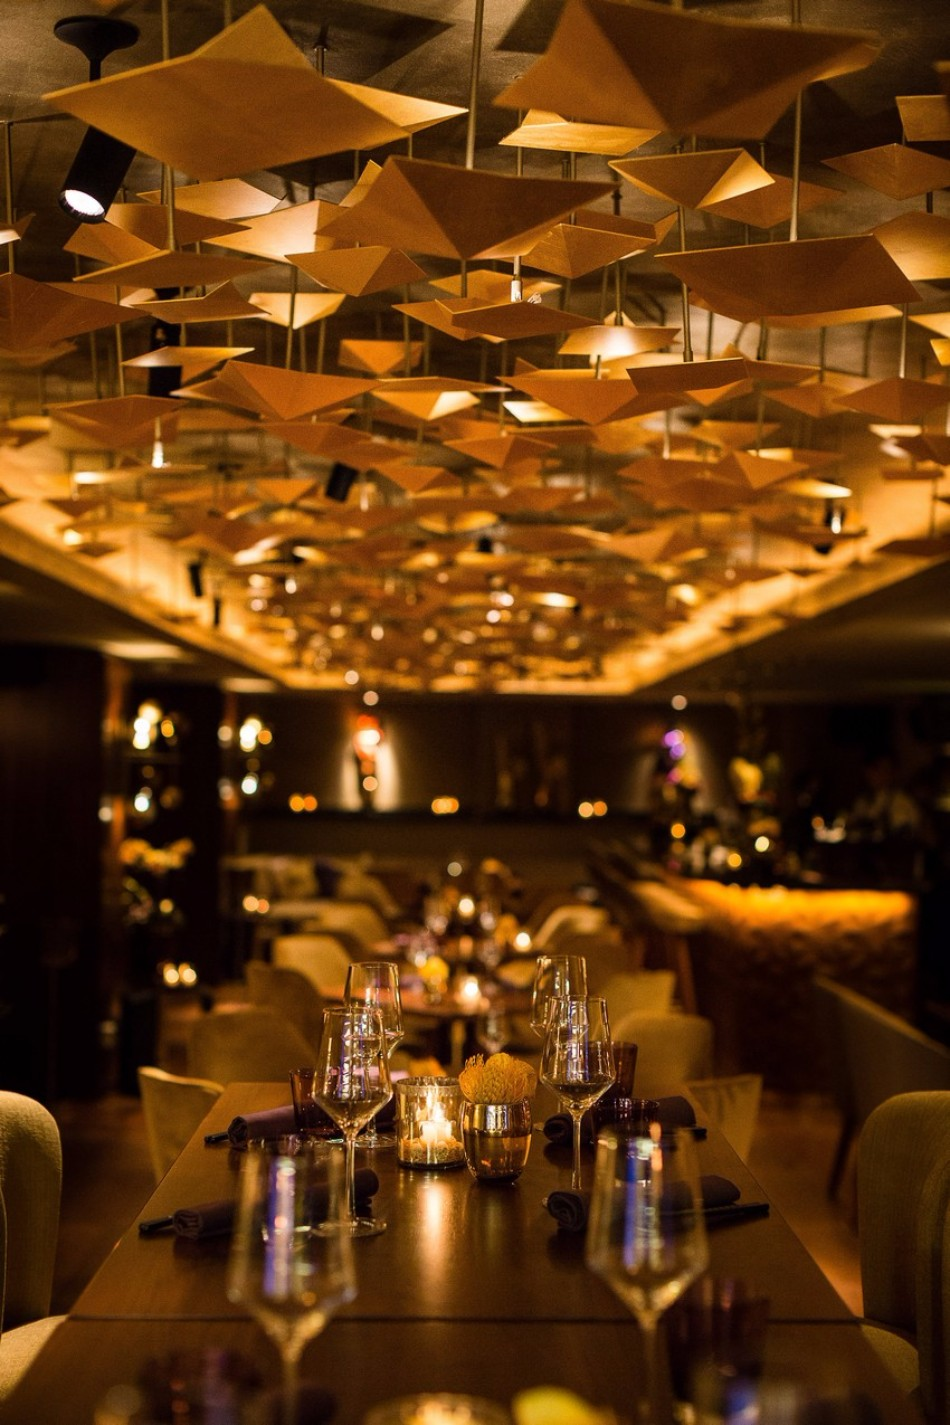 The Stunning Interior Design of the Luxury Restaurant Nikkei Nine | www.bocadolobo.com #interiordesign #homedecorideas #decorations #homedecor #luxurybrands #luxuryrestaurants #exclusivedesign #restaurants #luxury @homedecorideas